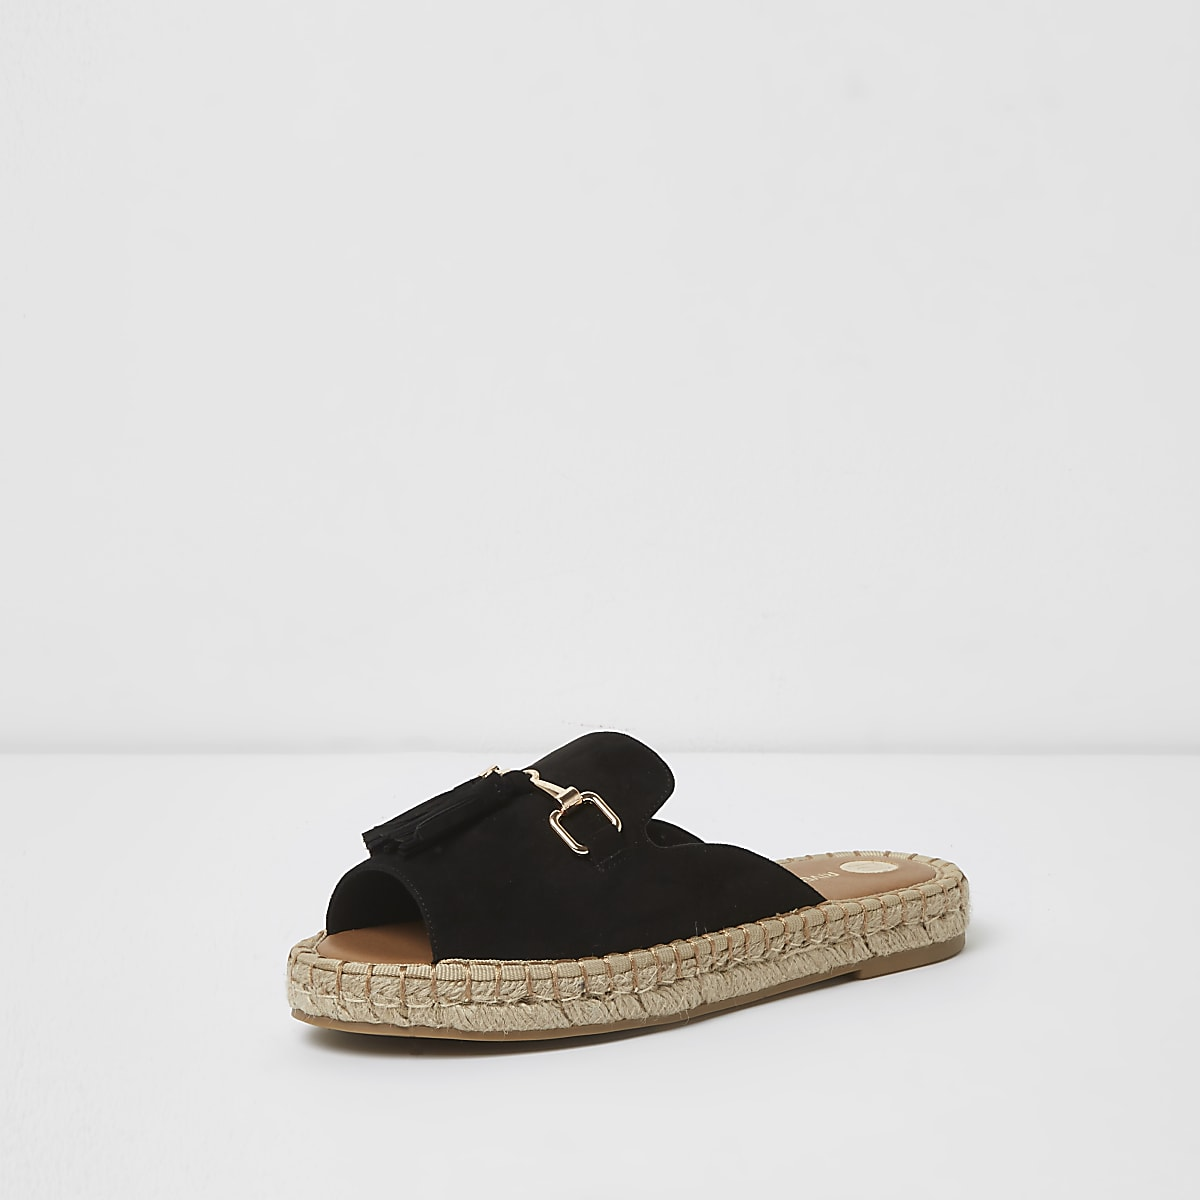 94fc966d4a9 Black Wide fit backless espadrille loafers - Sandals - Shoes   Boots ...